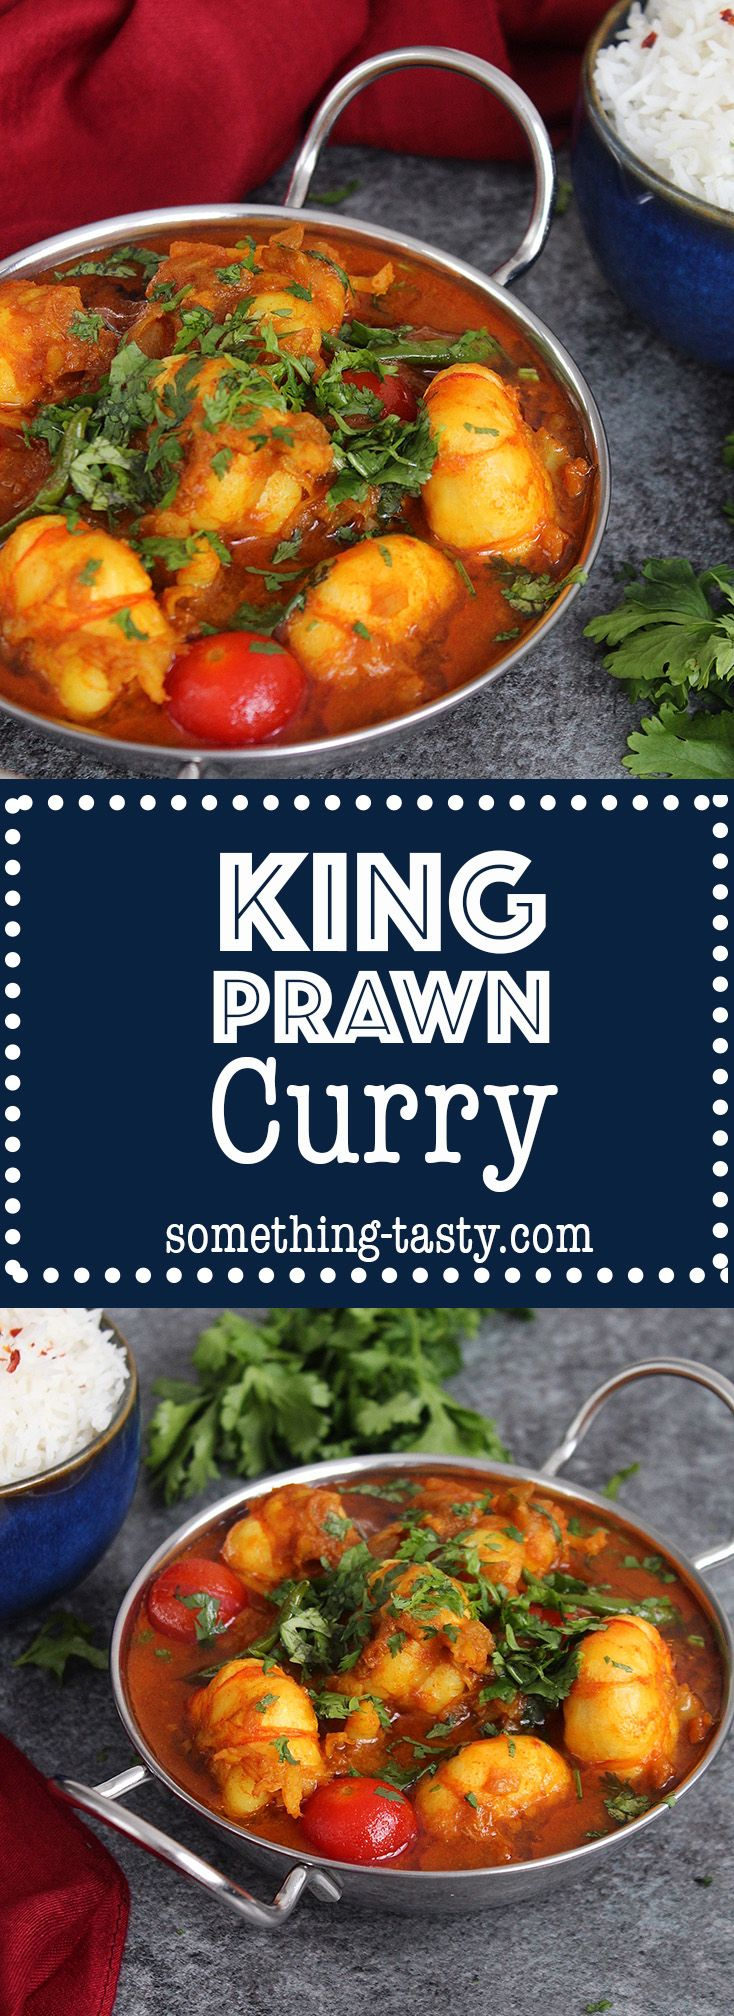 King Prawn Curry. From Something Tasty Blog.